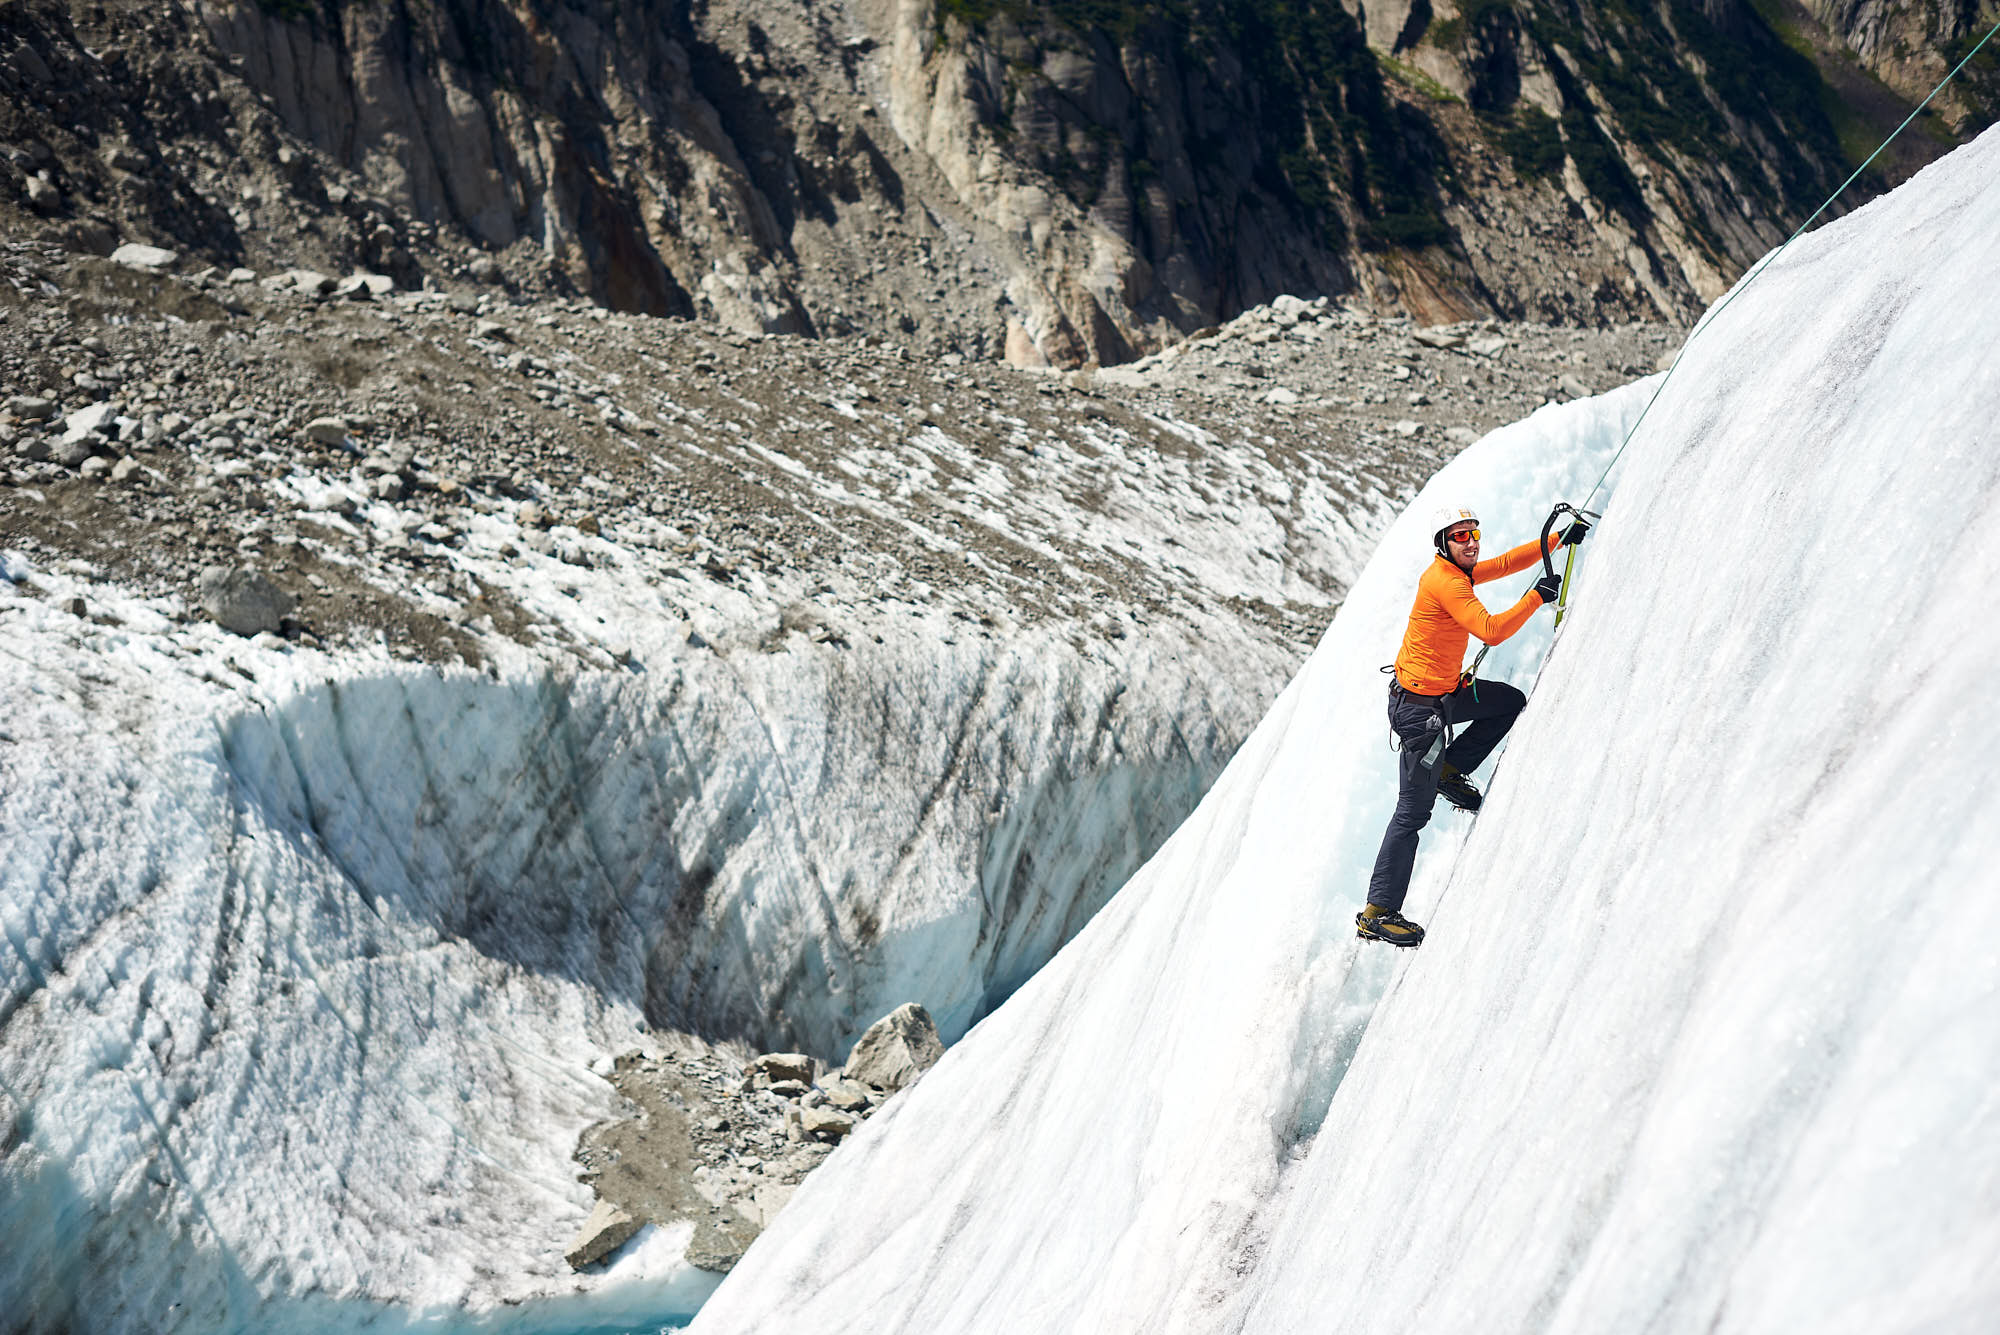 Alpinist ice climbing on the Mer de Glace glacier